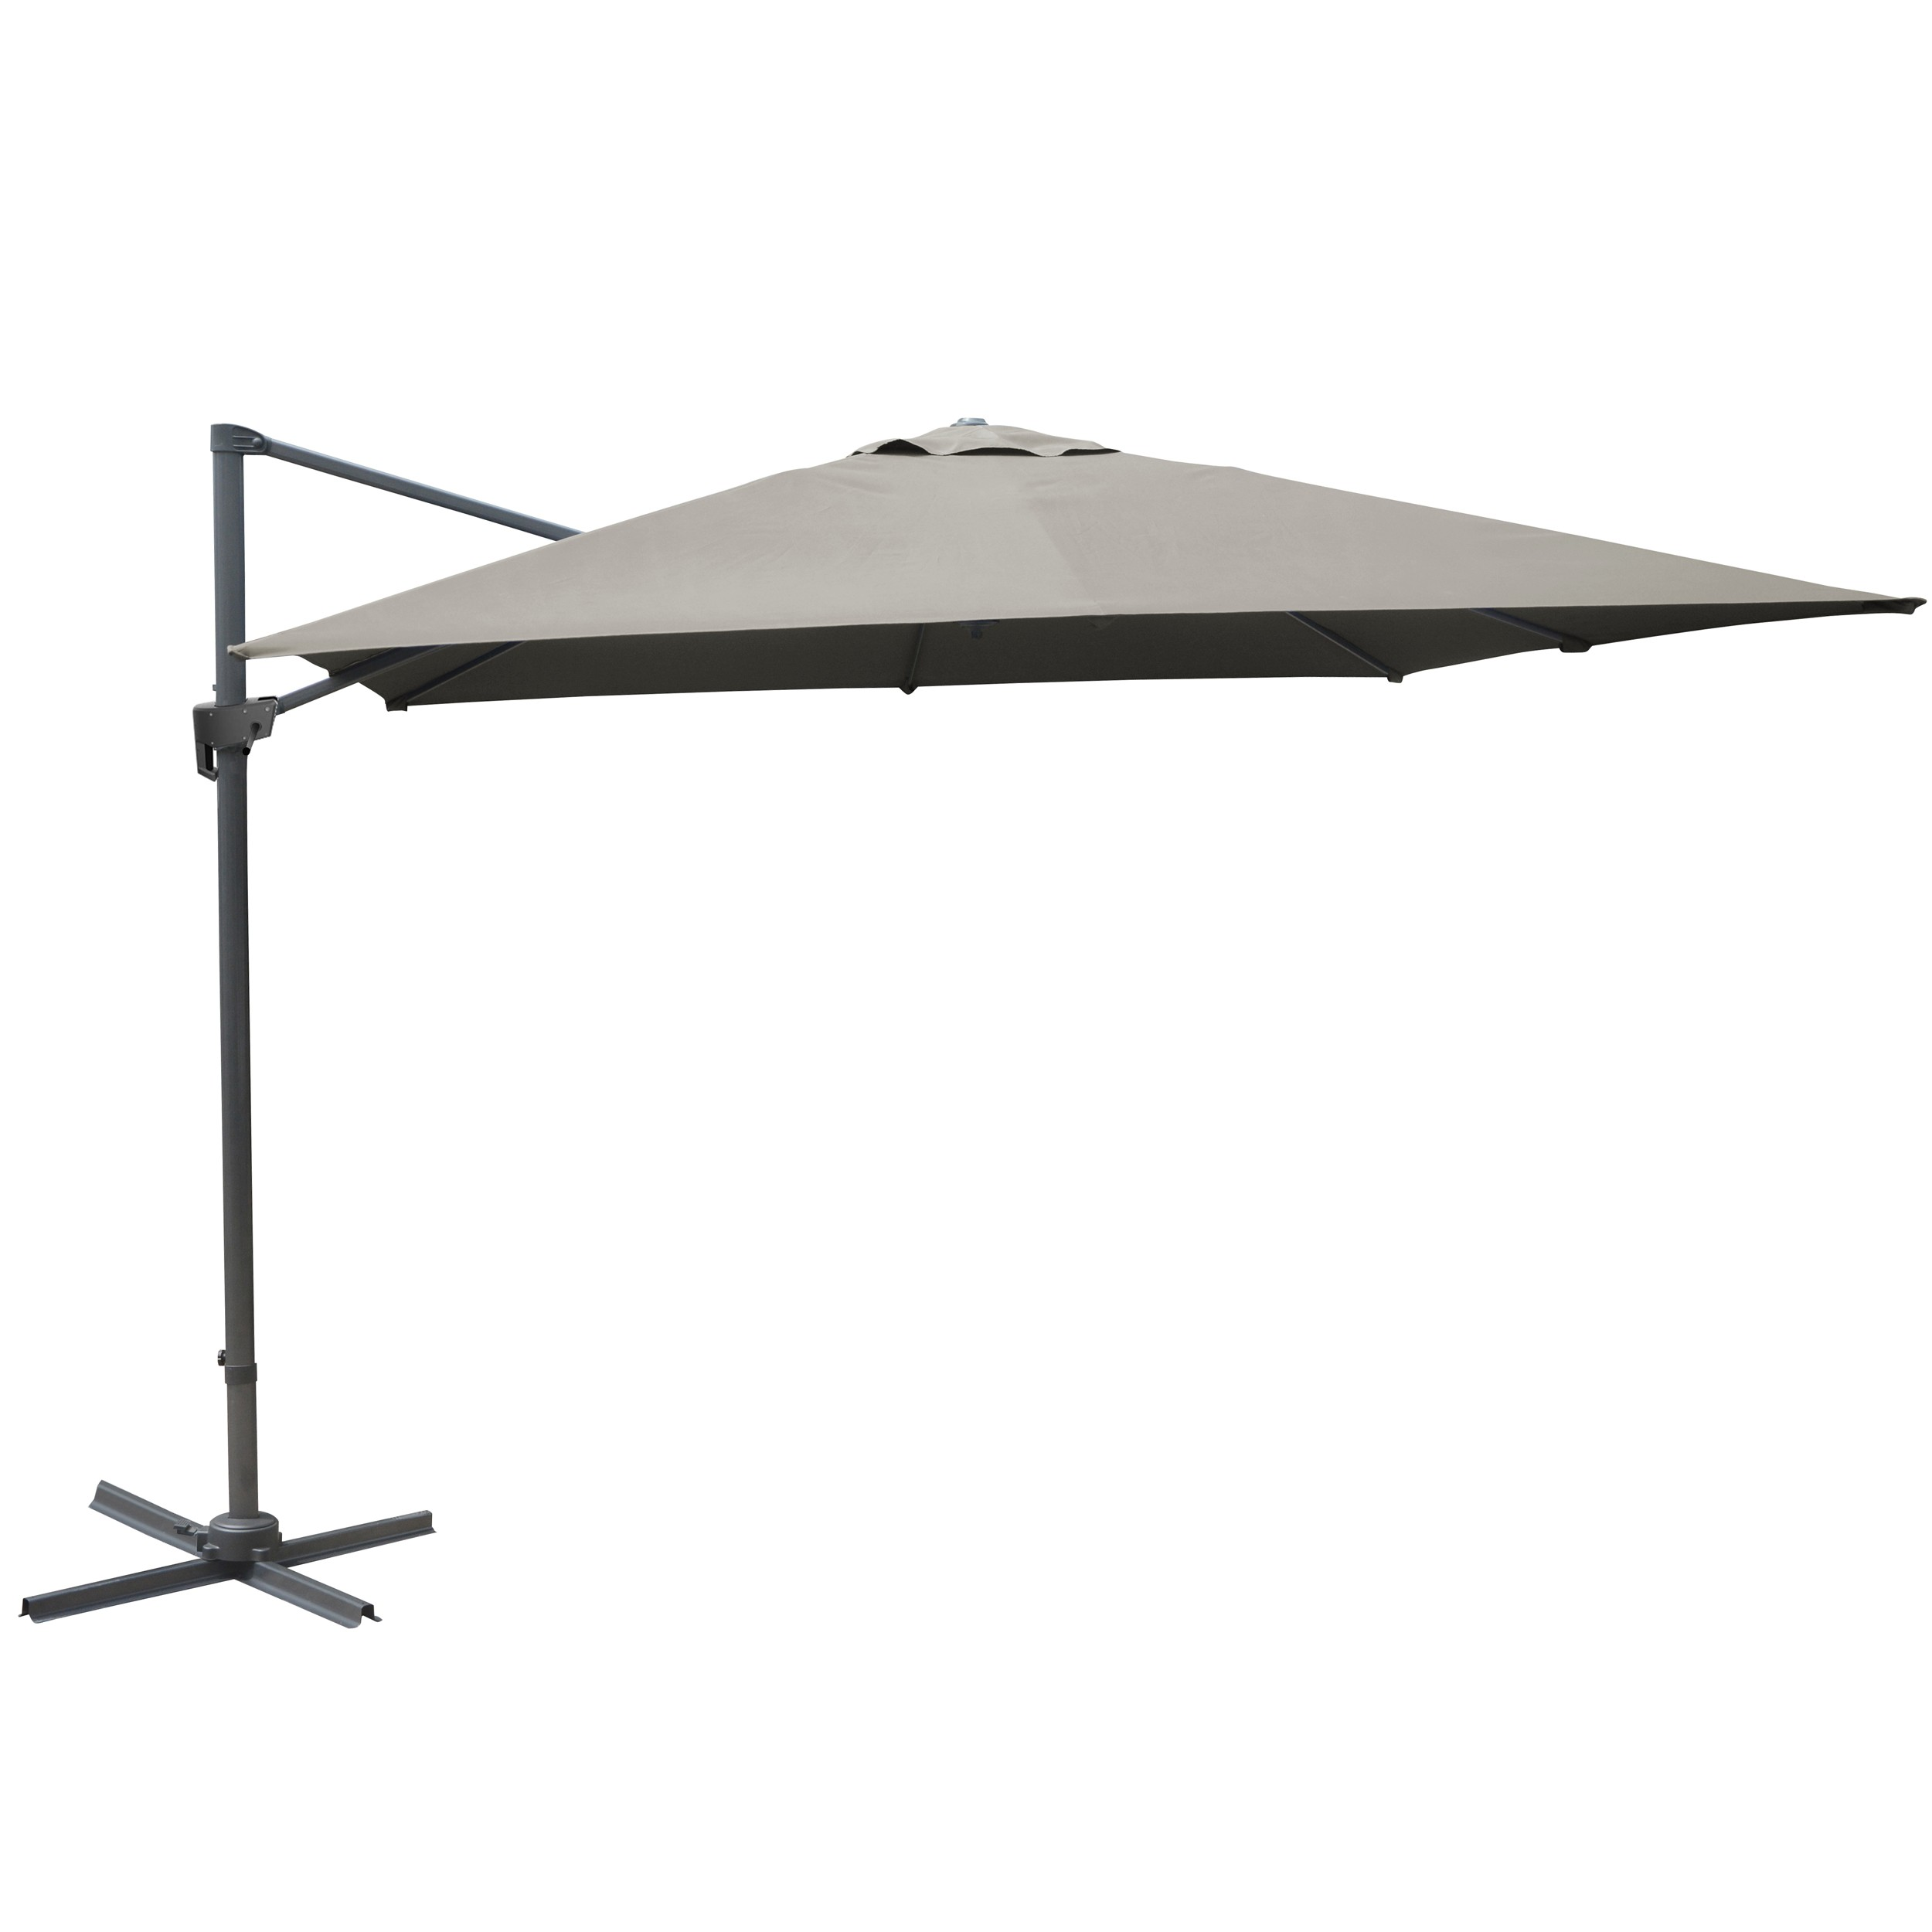 acheter parasol inclinable taupe